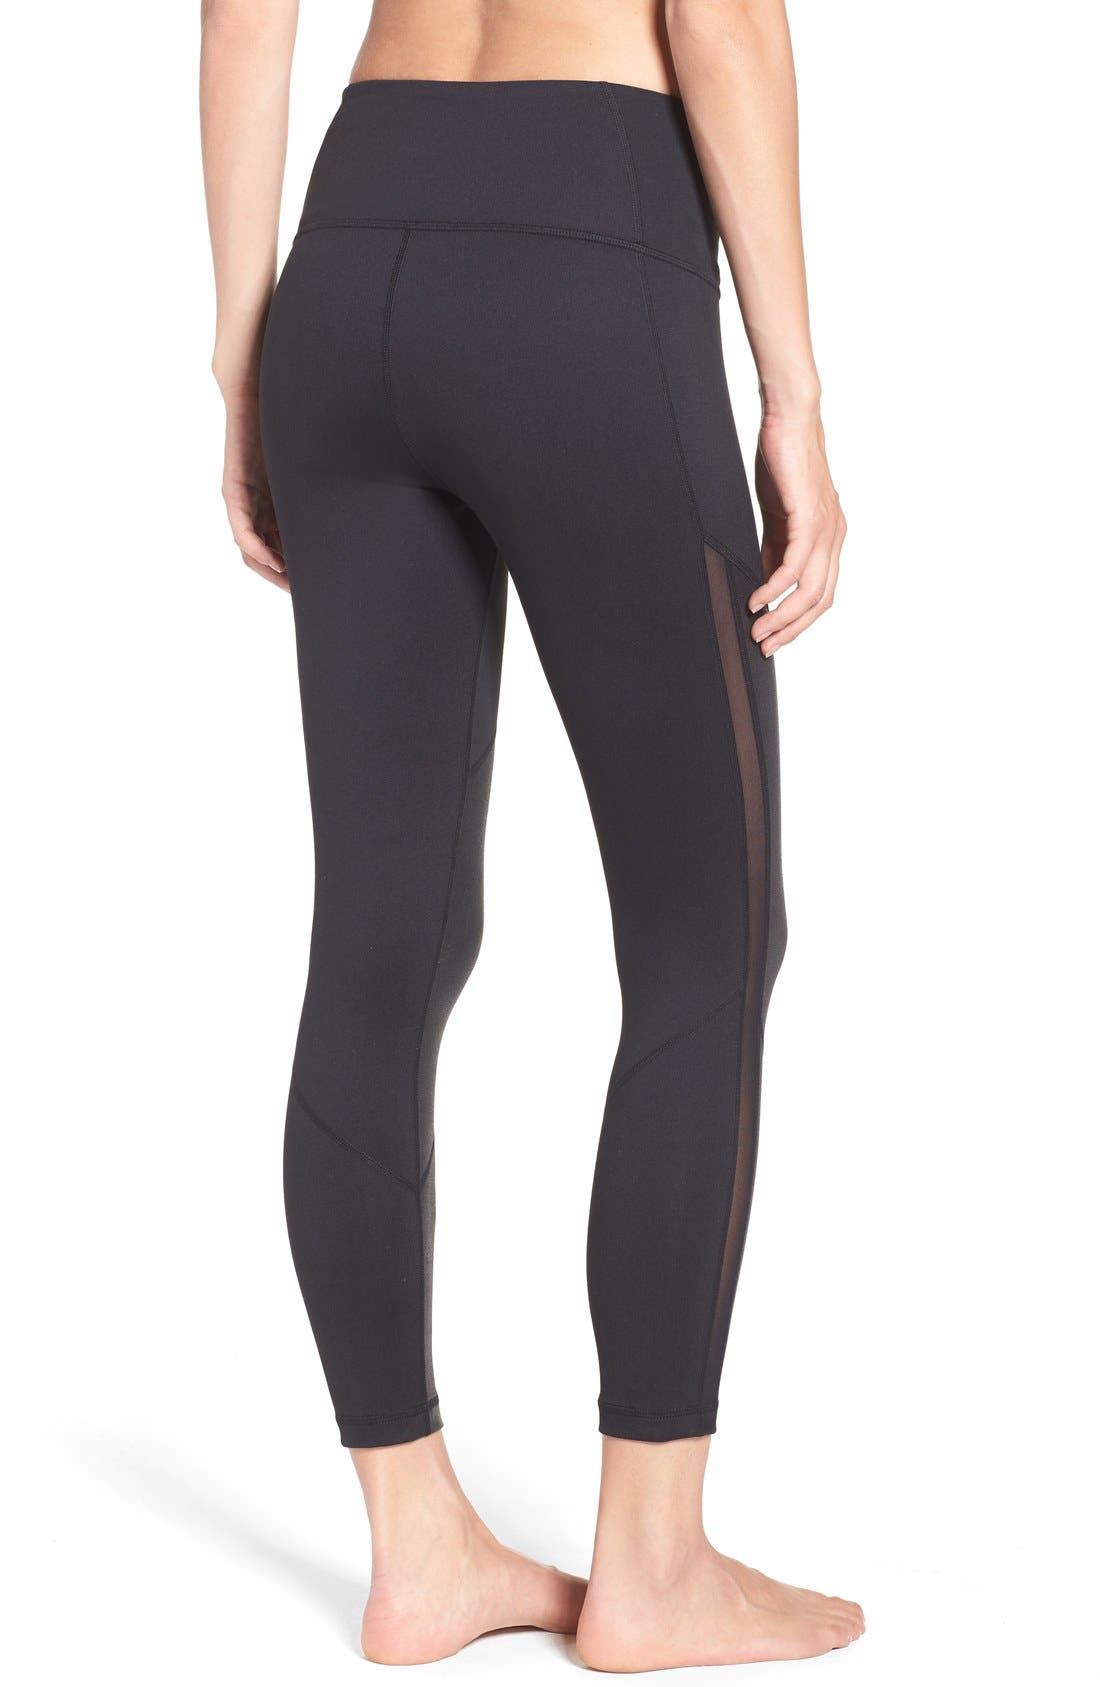 Alternate Image 2  - Zella 'Mindful' High Waist Midi Crop Leggings